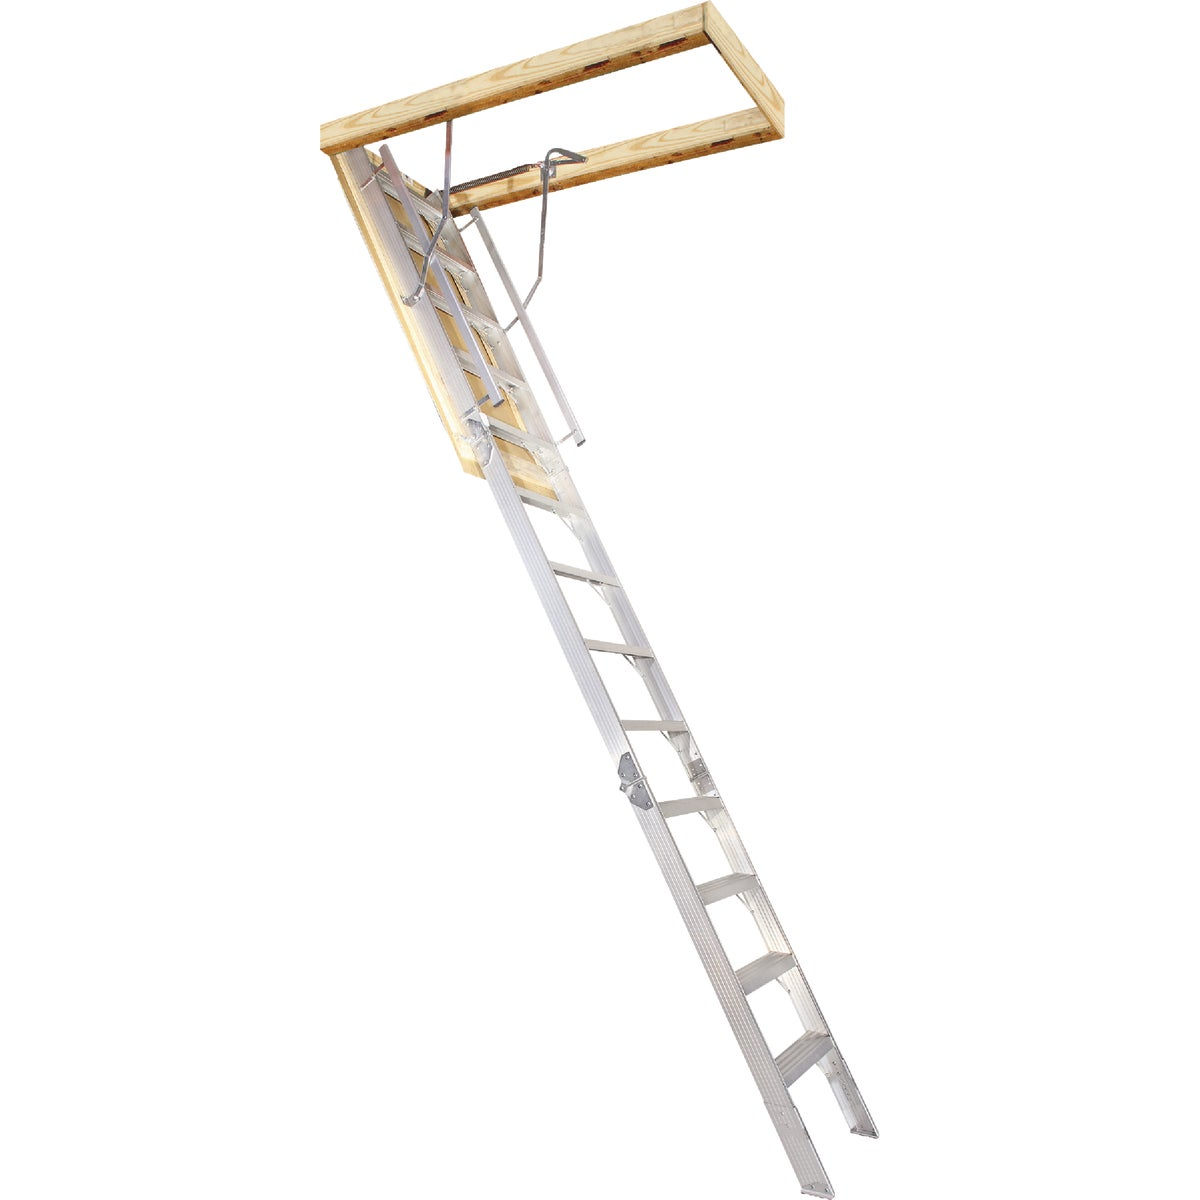 22-1/2X64 SUPREME STAIR - AL228P by Louisville Ladder